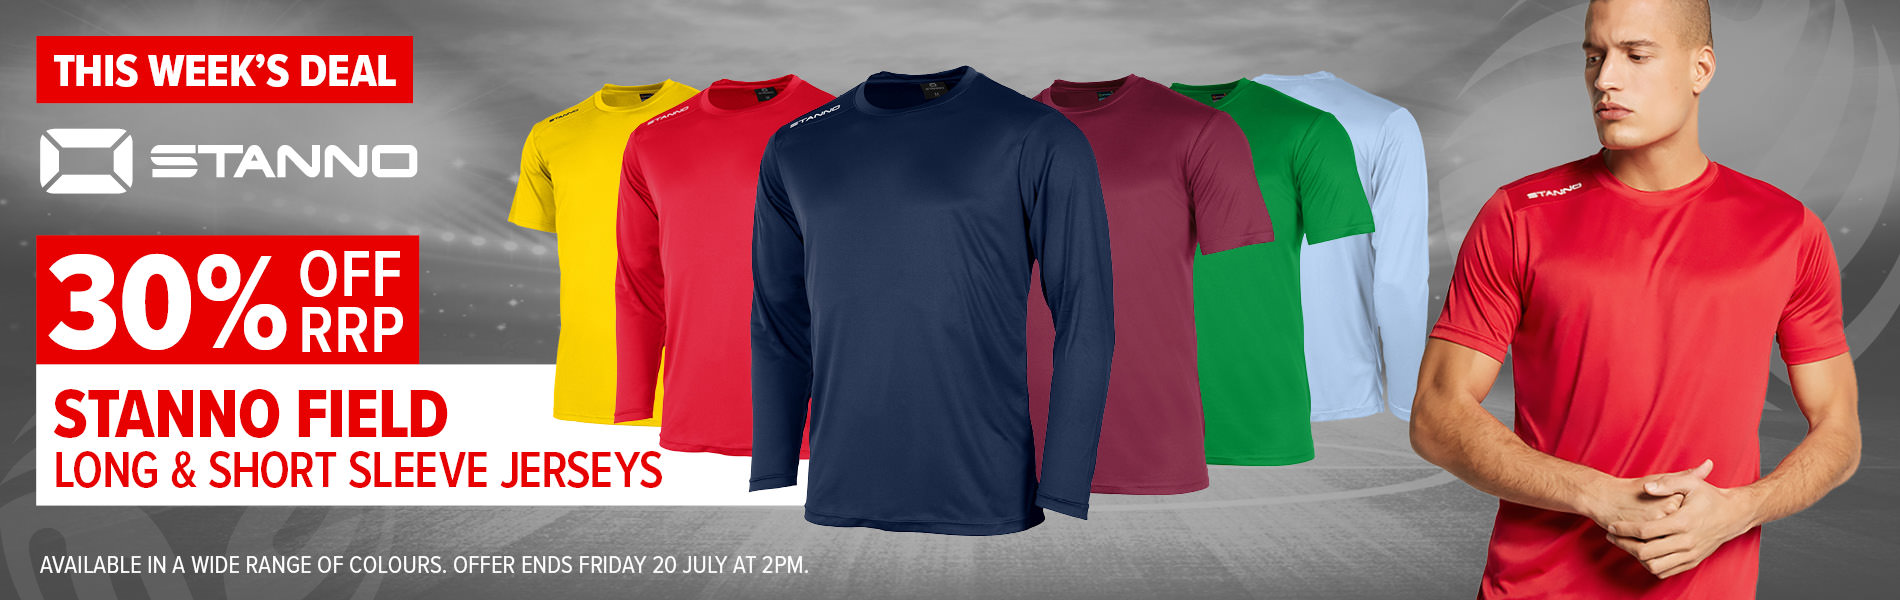 Weekly Deal - Stanno Field S/S and L/S Jerseys 30% off RRP